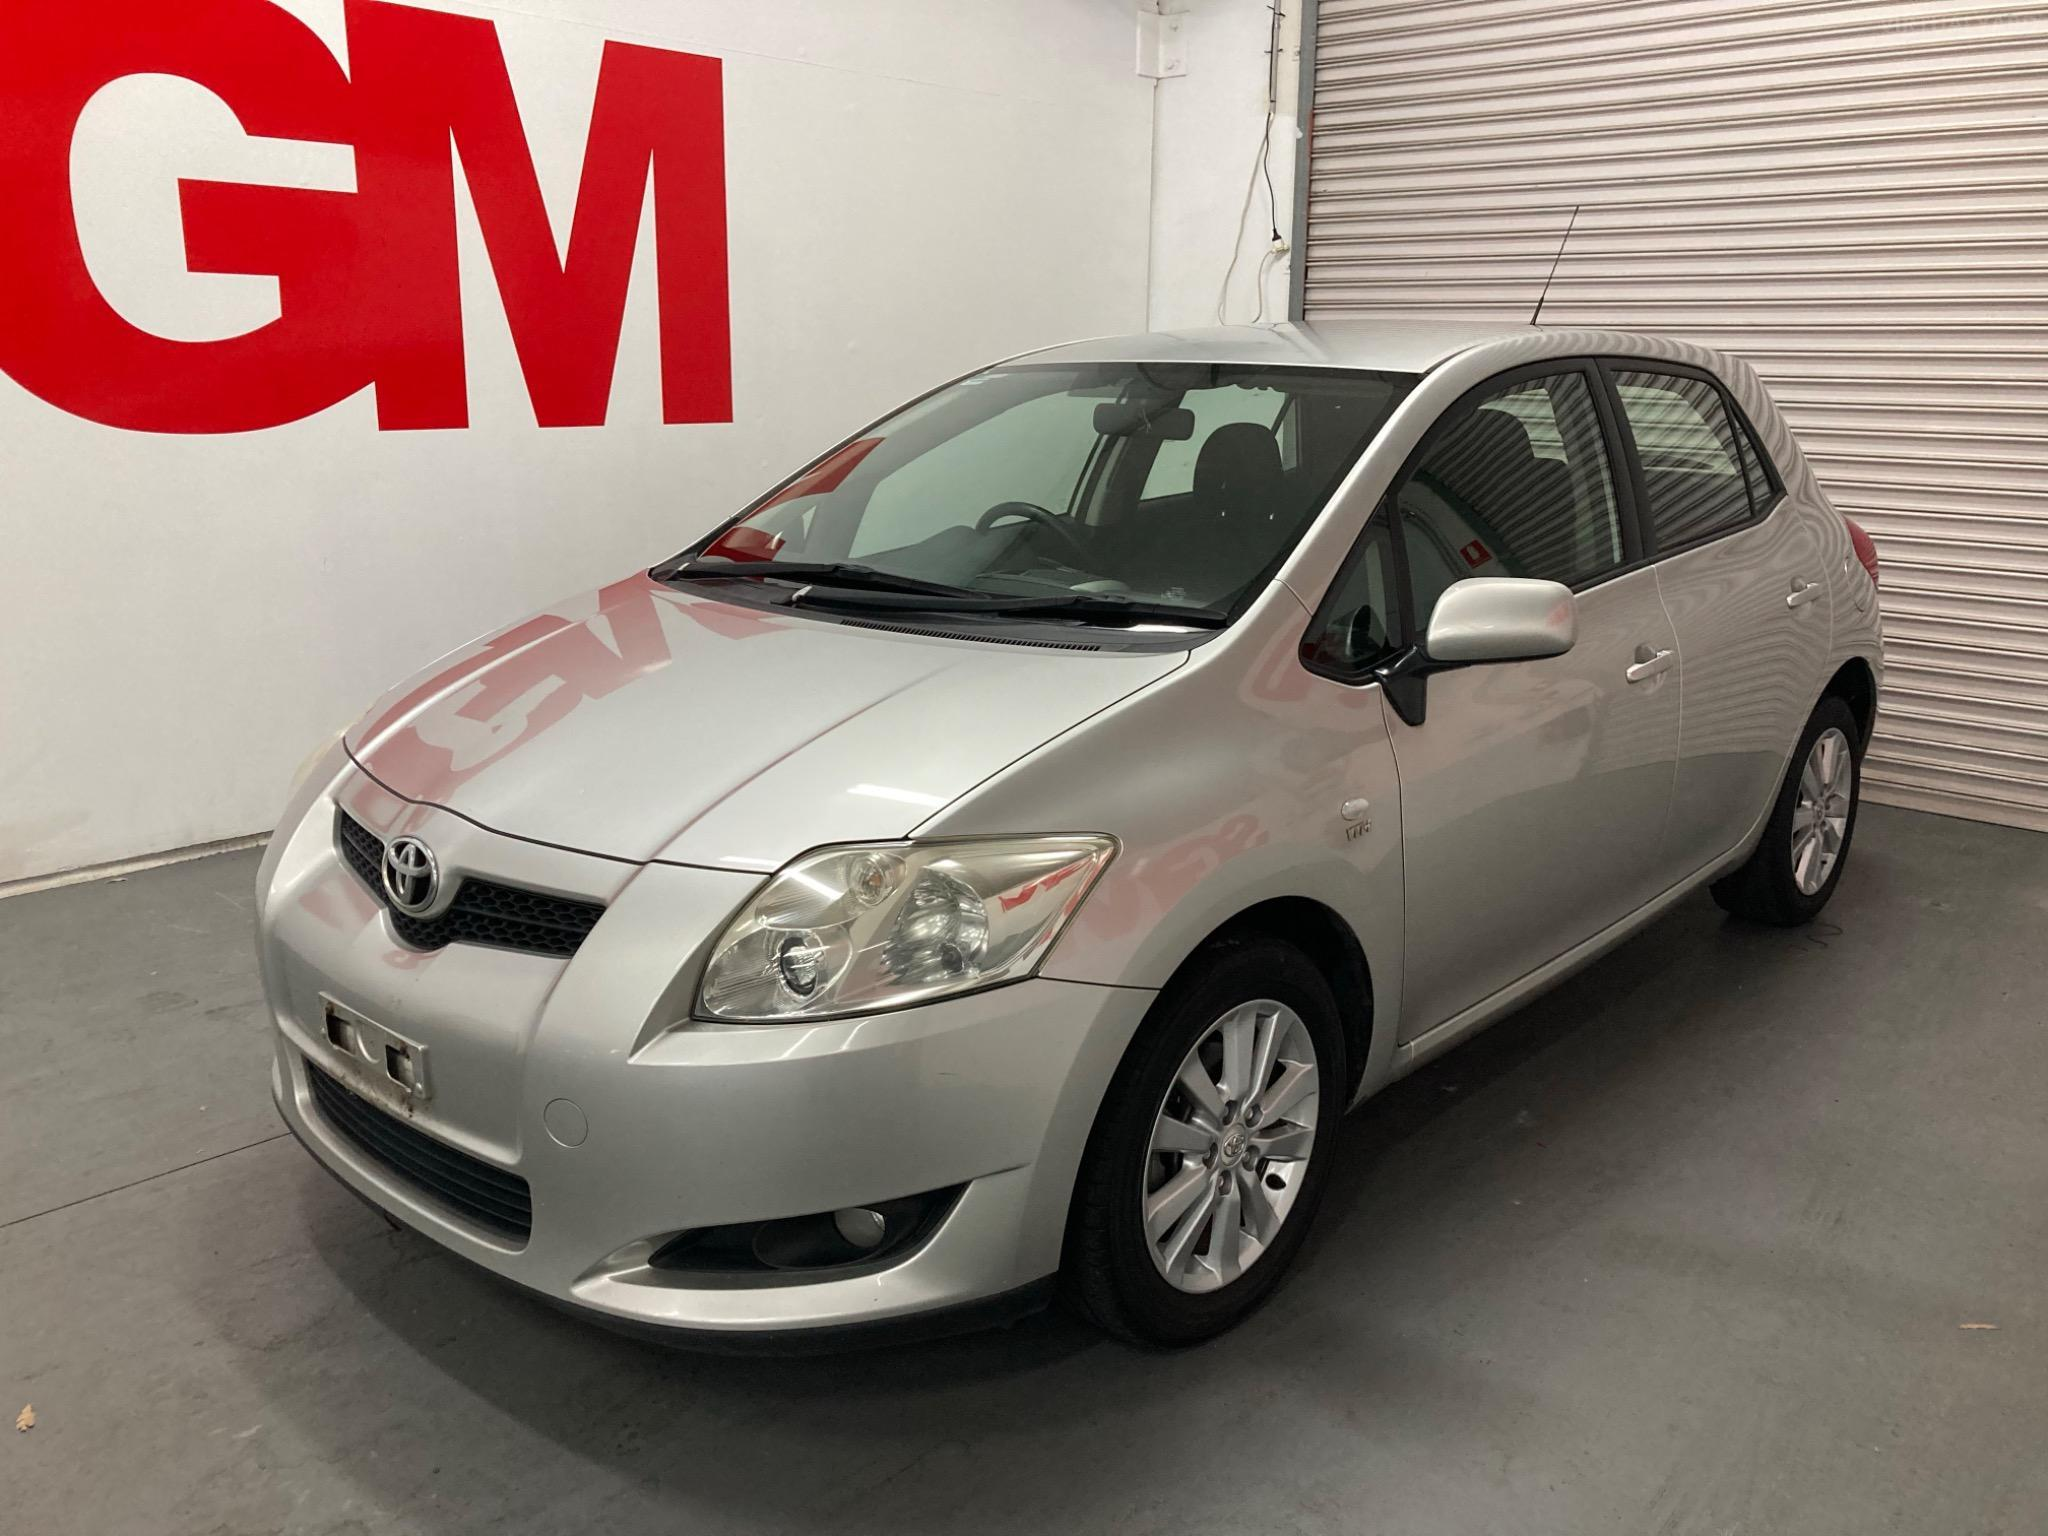 2007 Toyota Corolla ZRE152R Conquest Hatchback 5dr Man 6sp 1.8i Picture 8